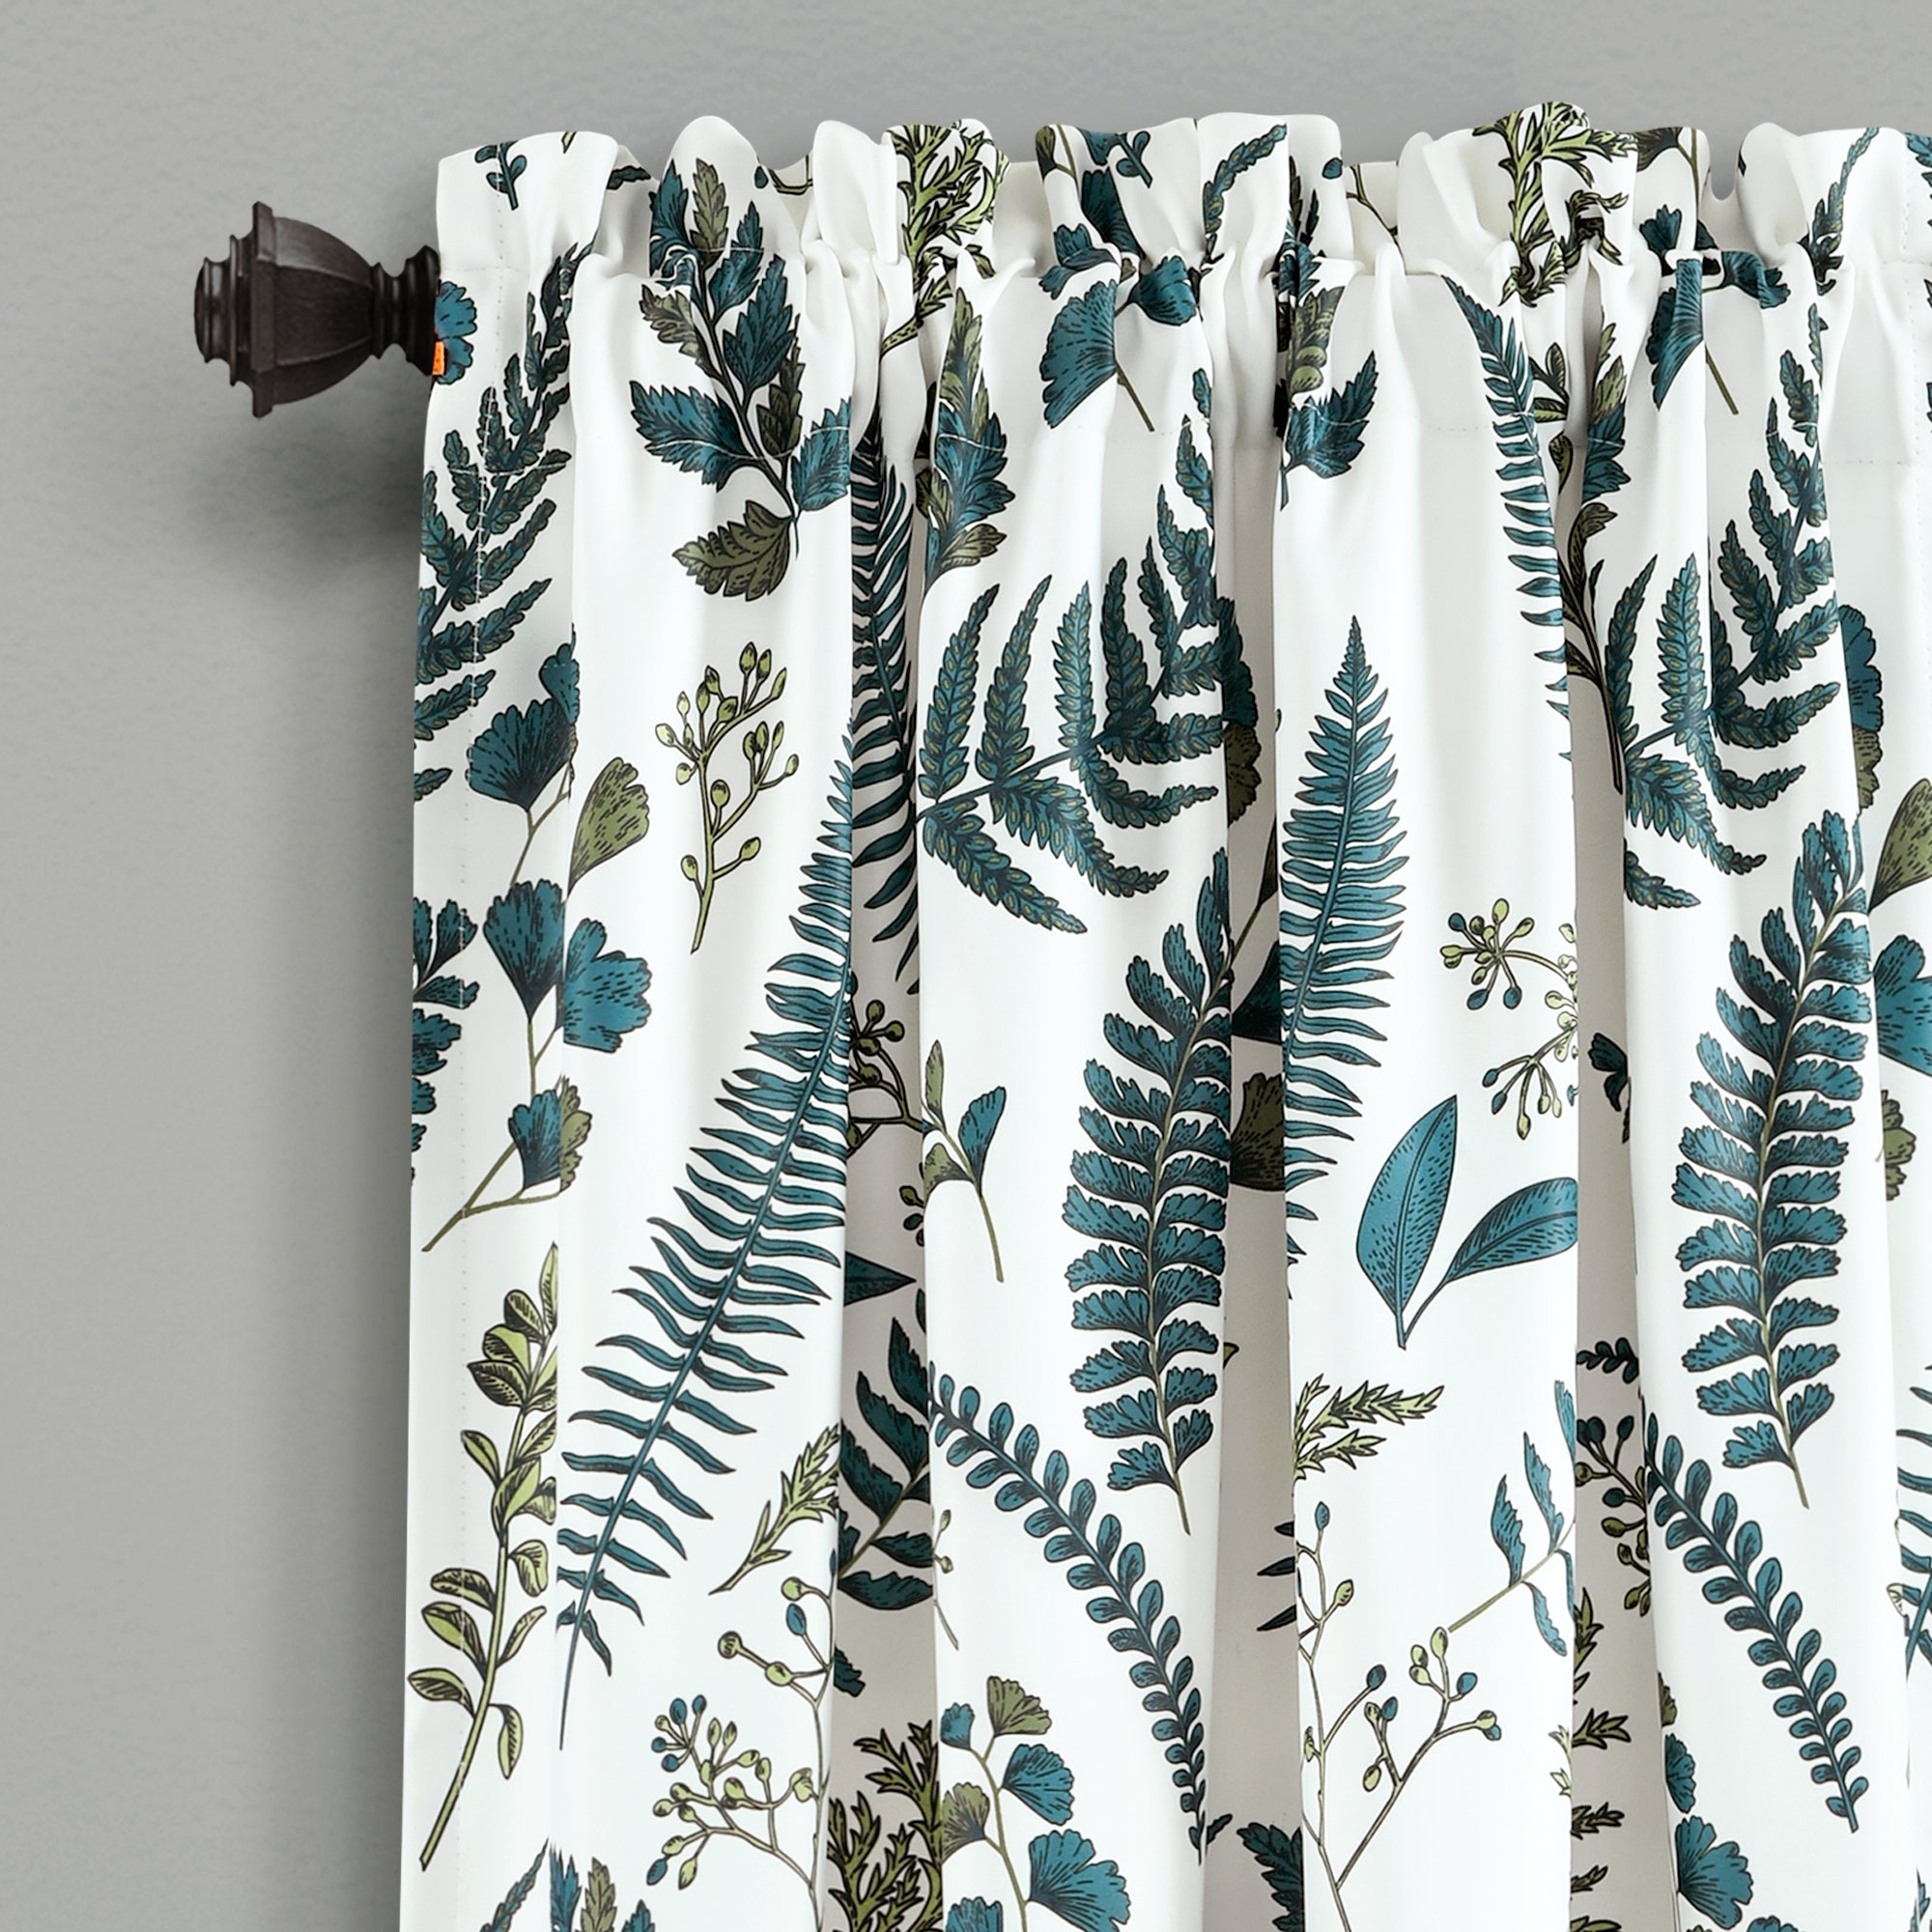 Devonia All Over Room Darkening Window Curtain Panel Set